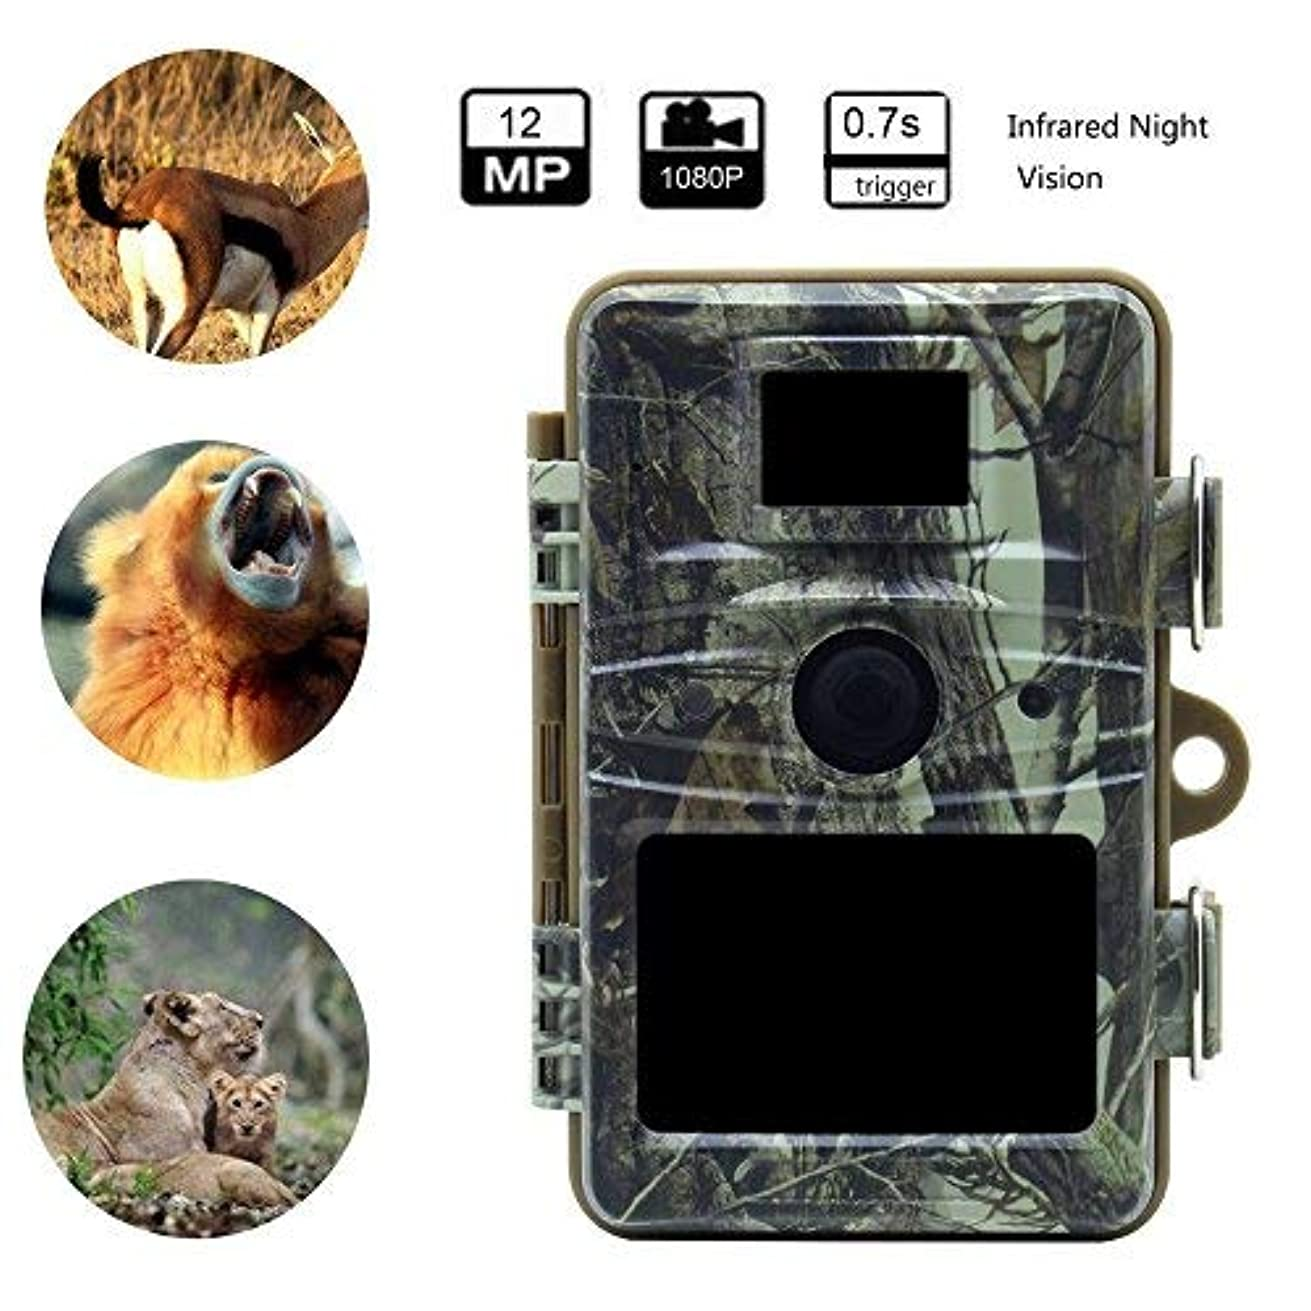 MDTEK@16GB SD Card+ Trail Game Camera RD1005,Hunting Trail Camera Trap 12MP Wildlife Game Cameras HD Night Vision Waterproof IP66 Hunter Trail Camera